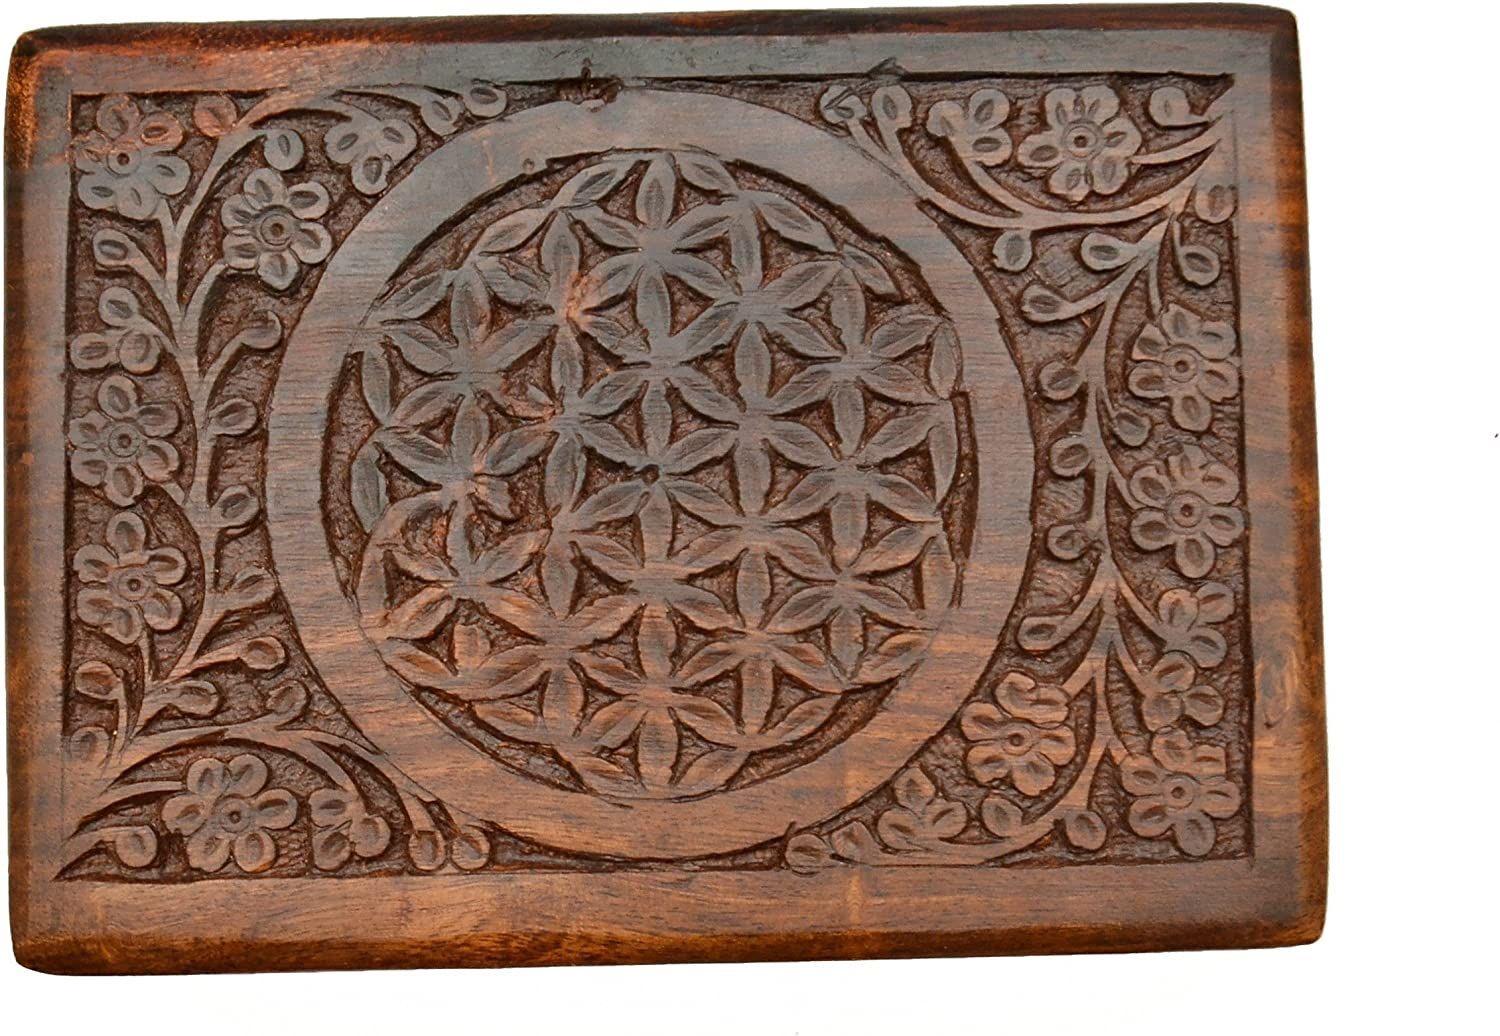 New Age Source The Carved Wood Box Flower of Life (Standard Version) (Standard Version)